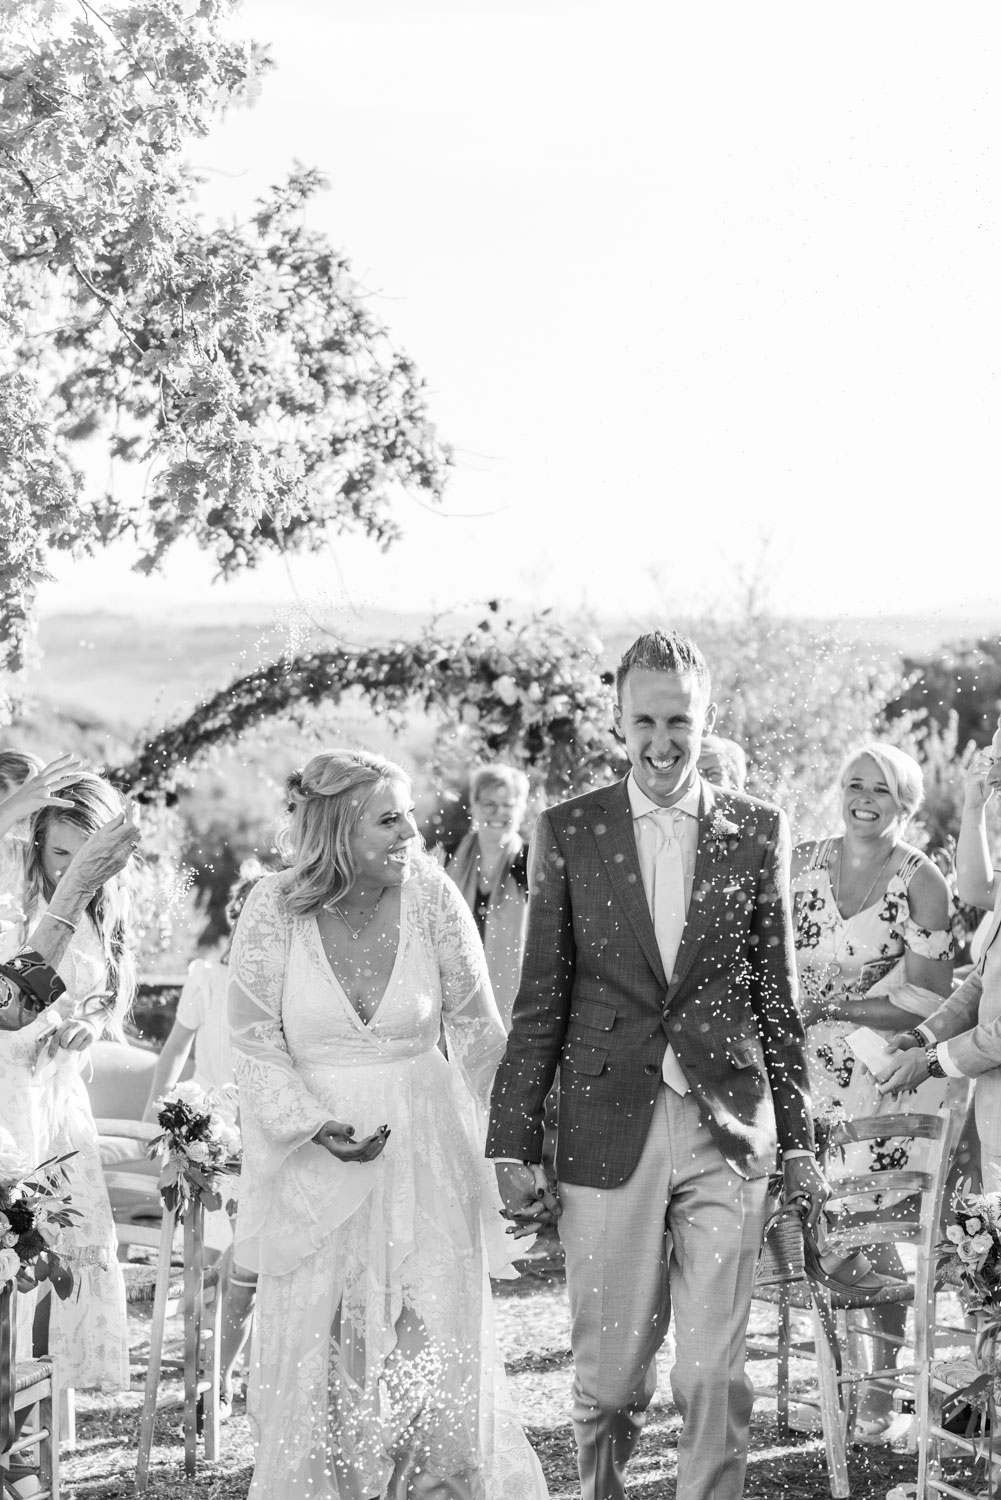 Confettishot of a bride and groom walking out of their ceremony at Fattoria di Corsignano